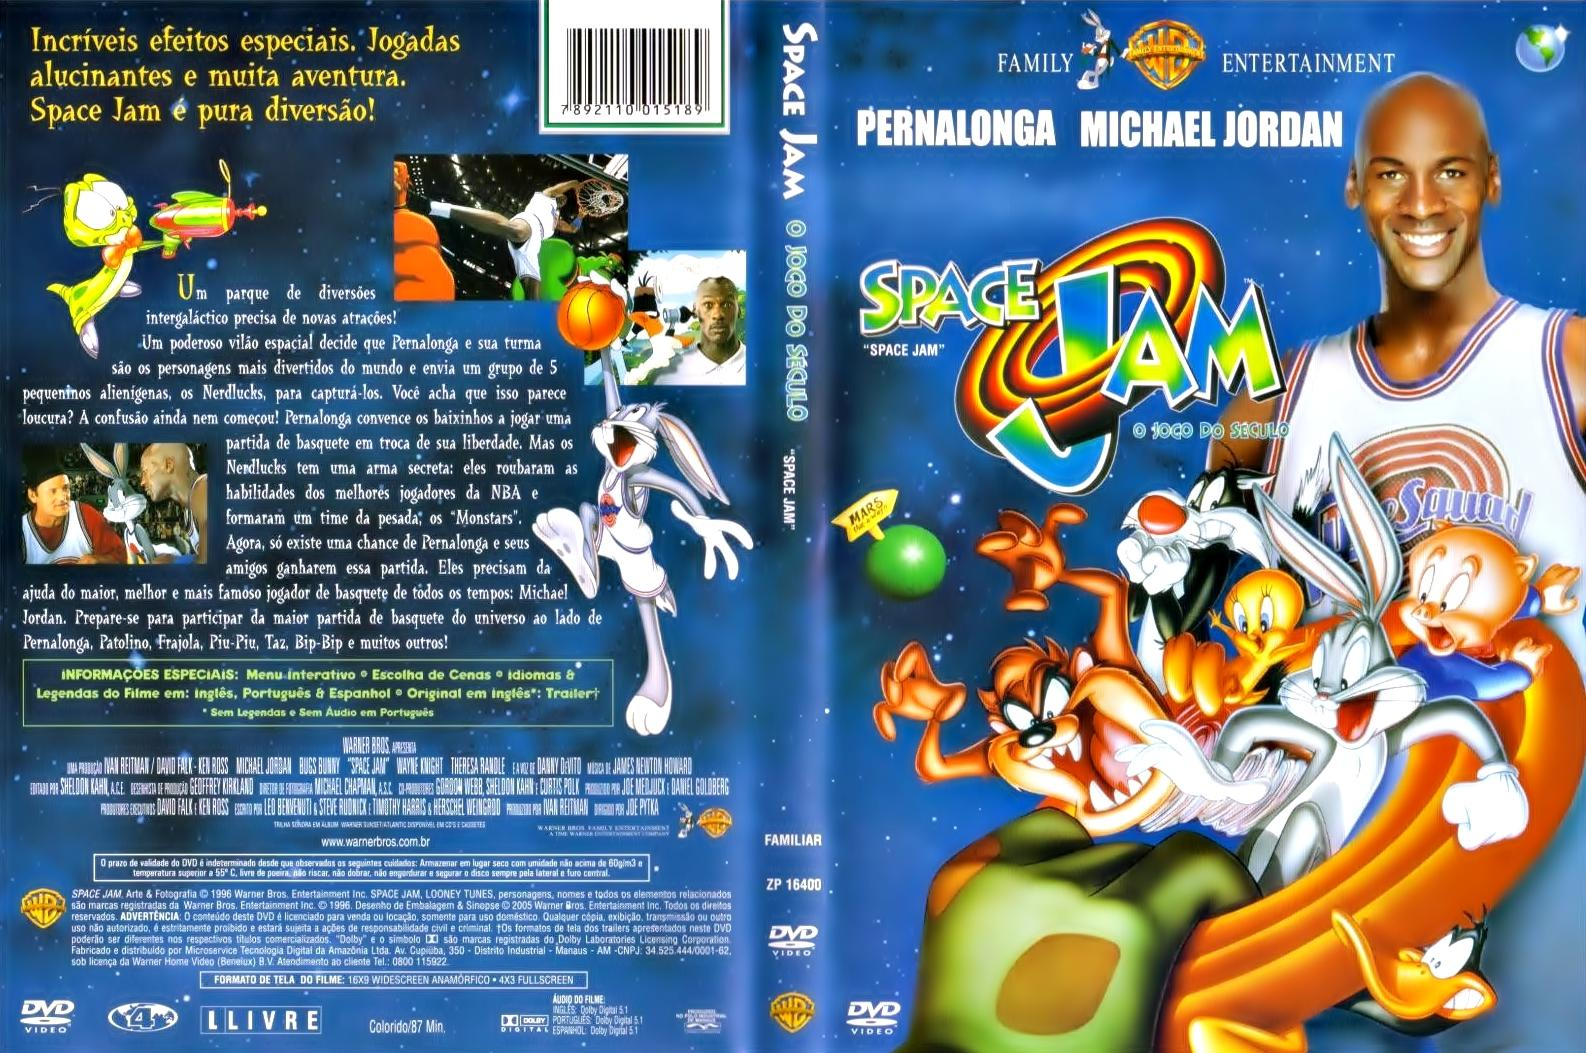 Space Jam PT-PT Space-Jam-O-Jogo-Do-Seculo